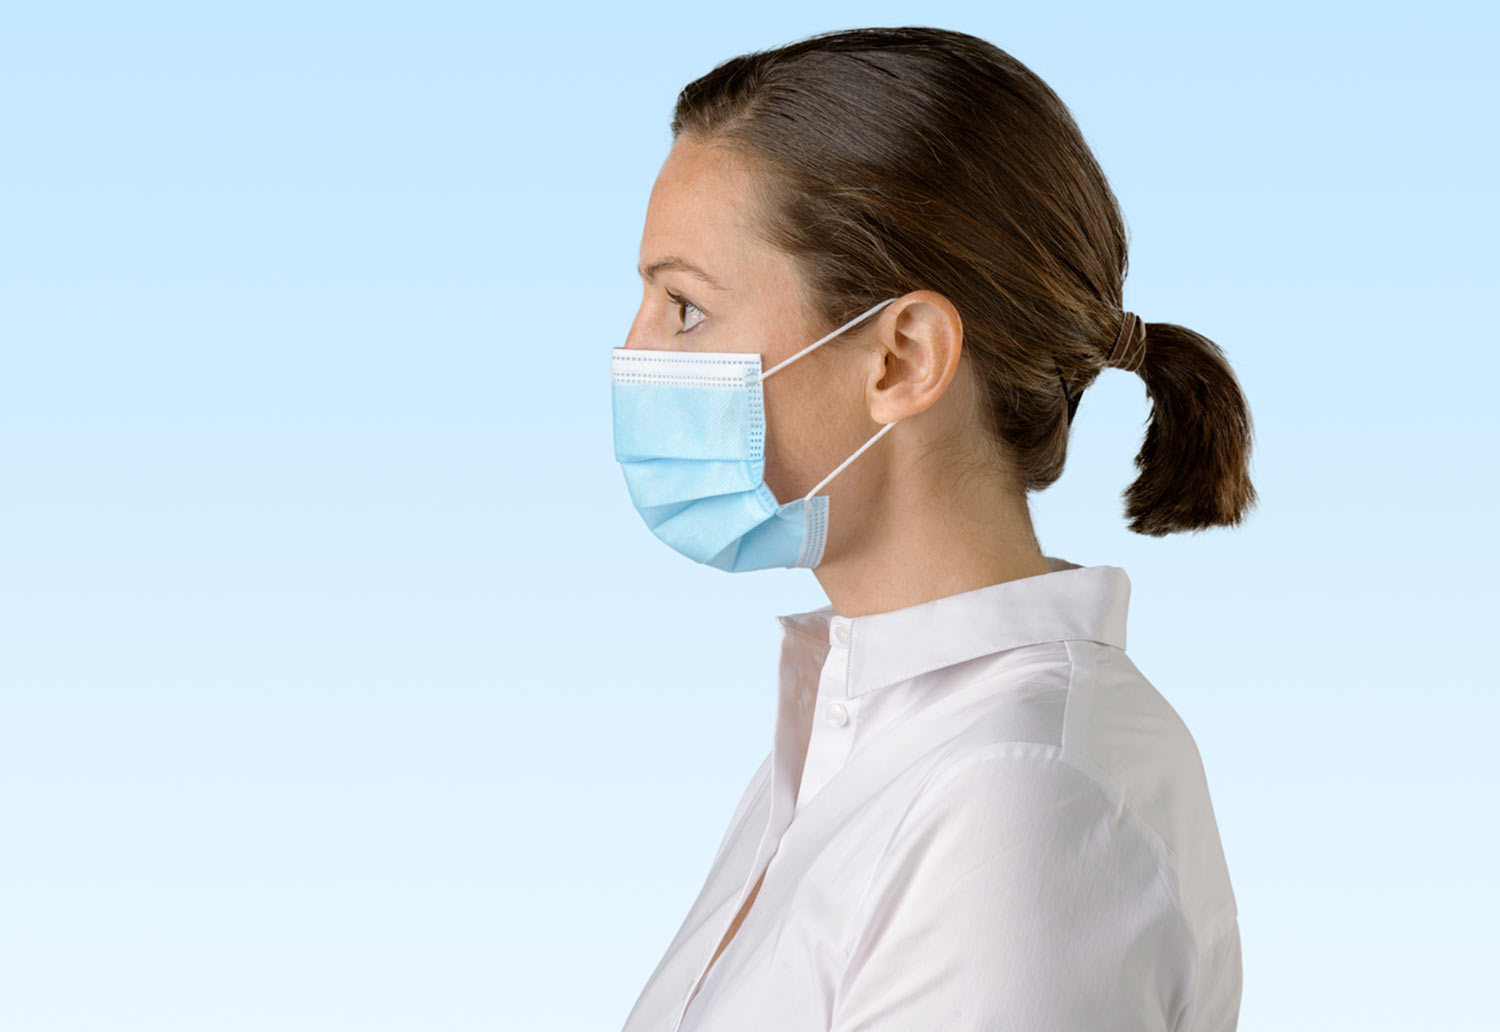 Image of someone wearing a Detmold Medical mask